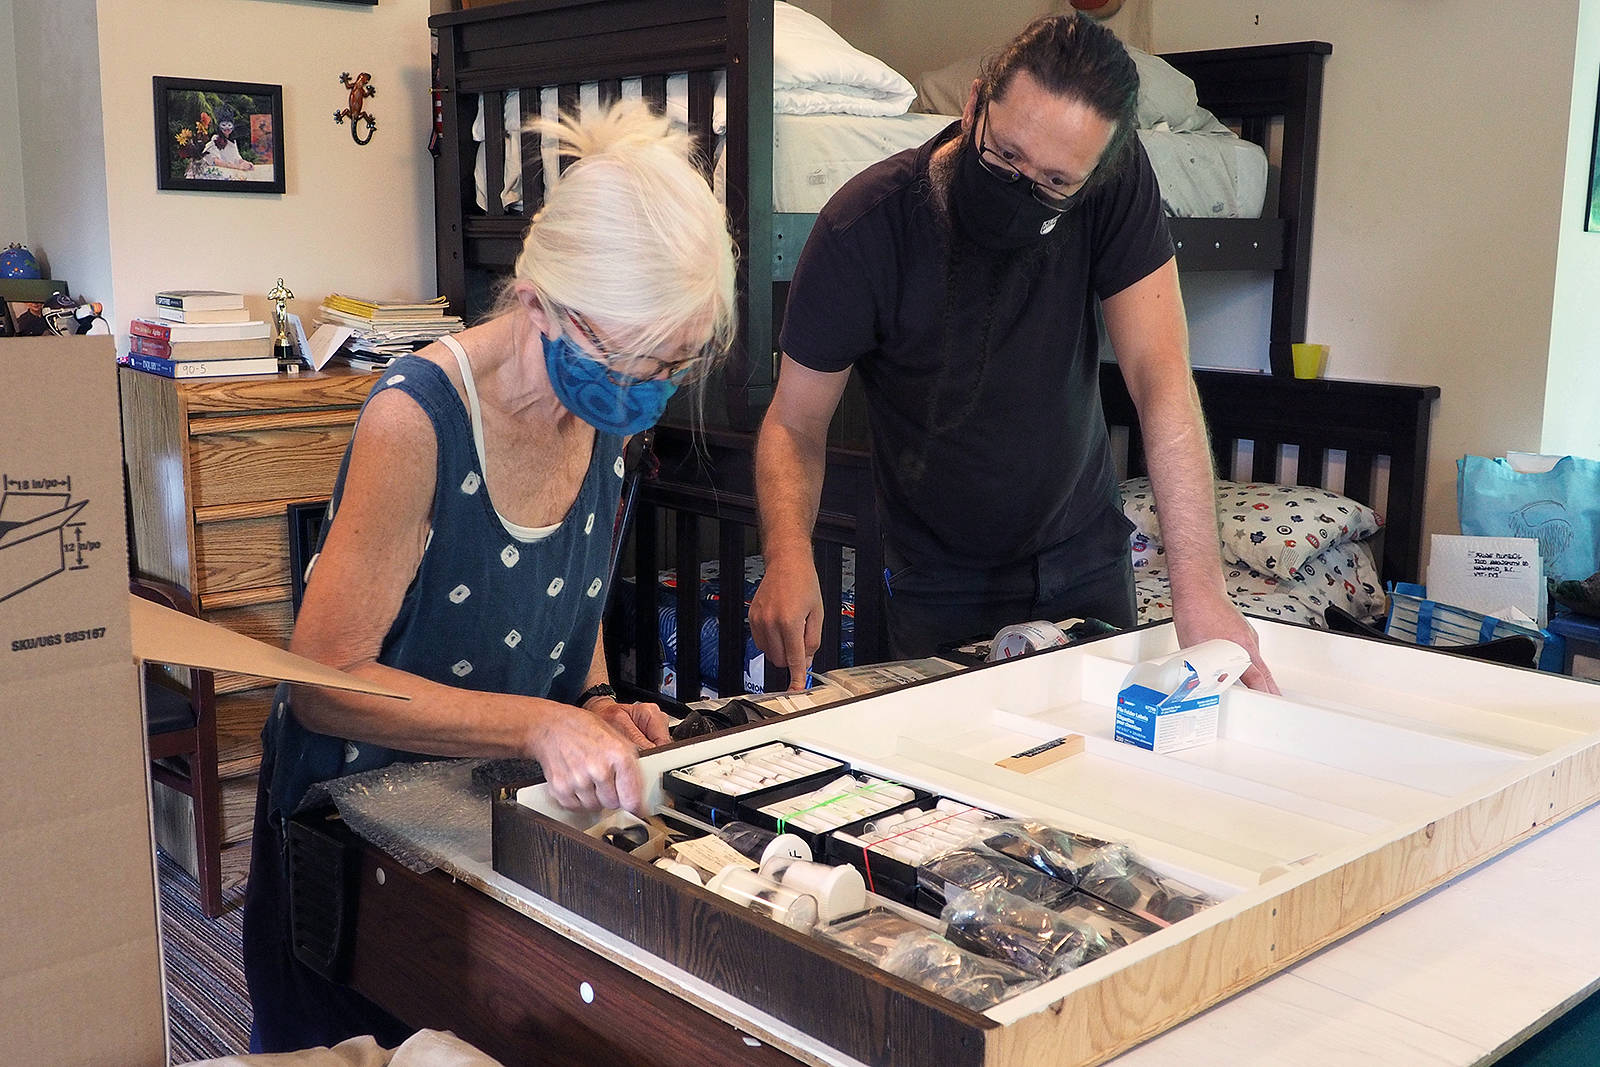 Sheila Byers, marine biologist and former interpreter for the Beaty Biodiversity Museum, and Colin MacLeod, zoologist with UBC's Biodiversity Research Centre and museum curatorial assistant, prepare Bill Merilees's mollusk shell collection for transport to Vancouver this past Tuesday, July 20. (Chris Bush/News Bulletin)